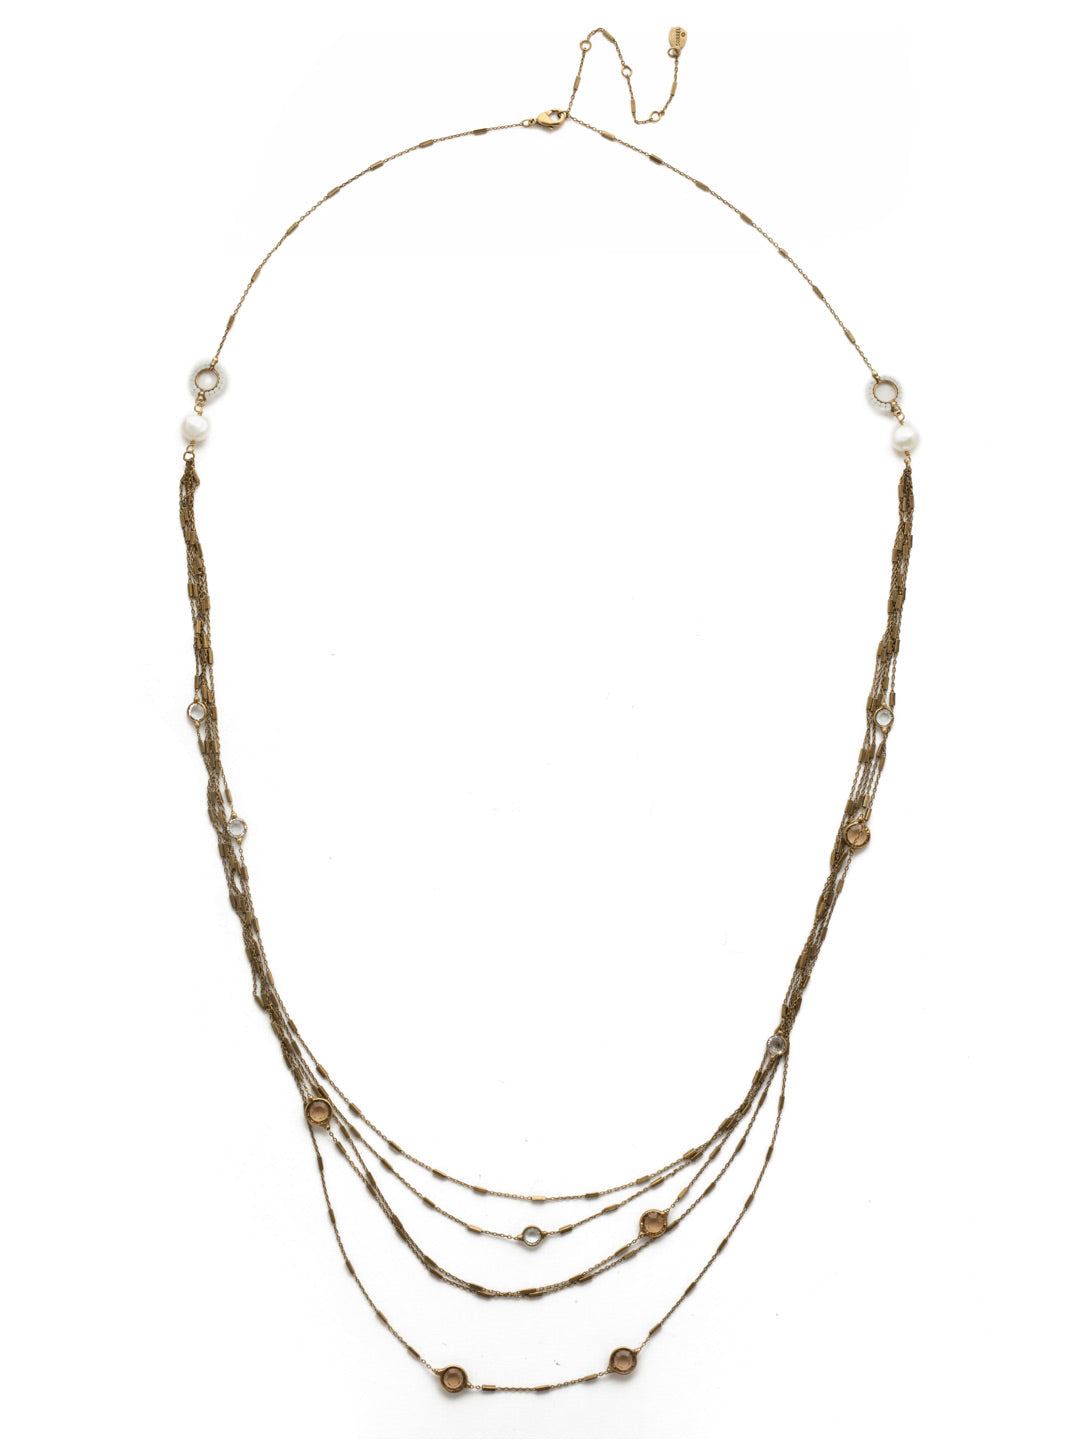 Luminous Layered Necklace - NEK2AGROB